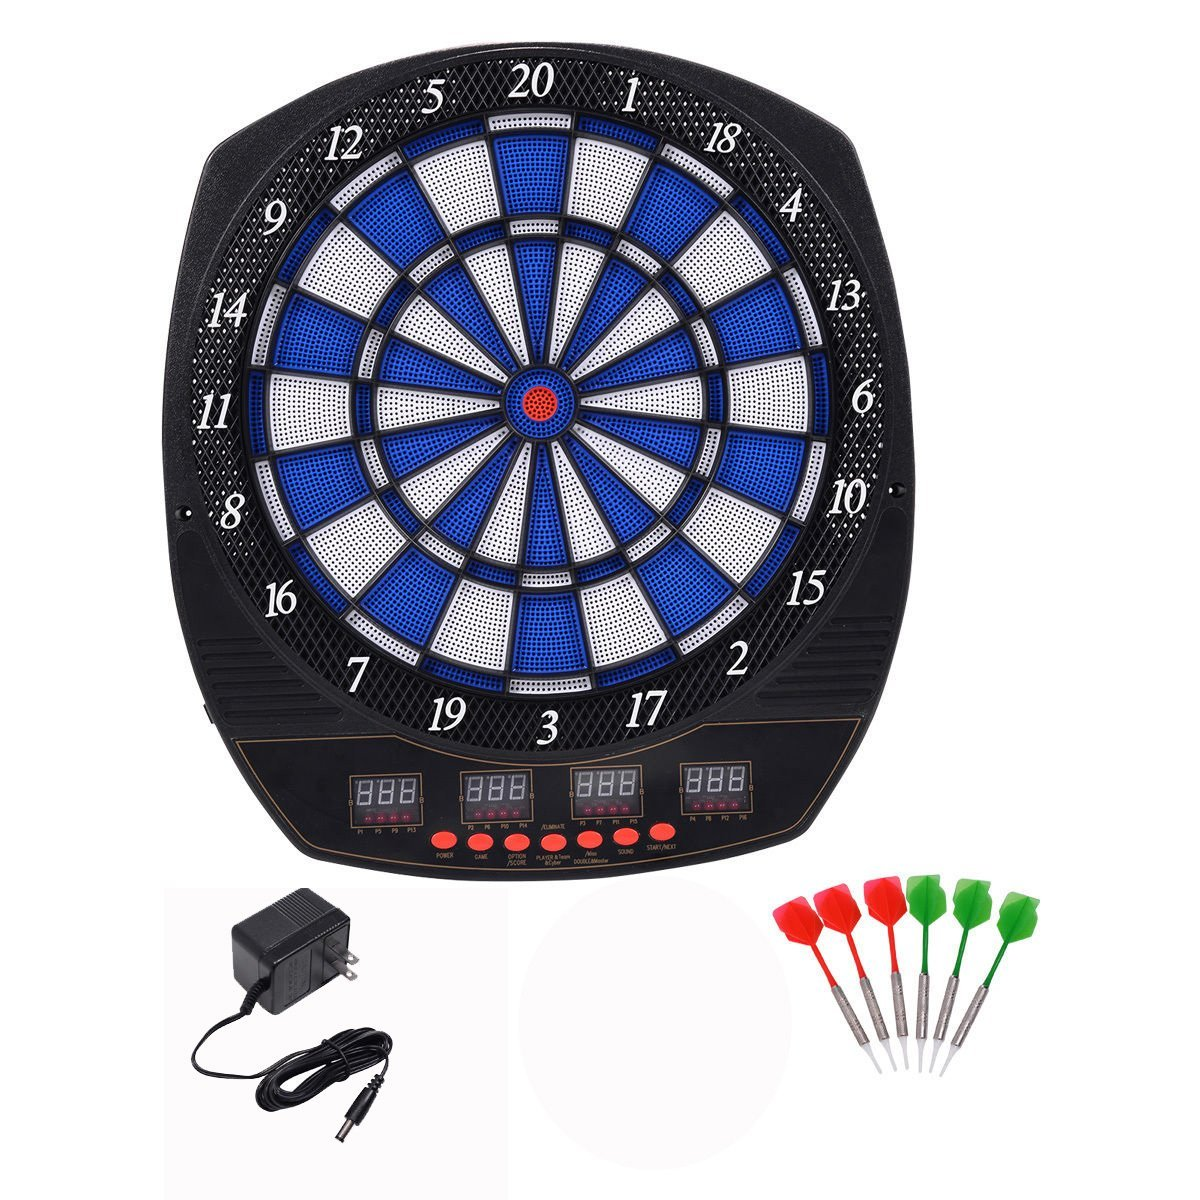 Goplus Arachnid Electronic Dart Board Set Target Dartboard Game Room LED Display w/ 6 Darts